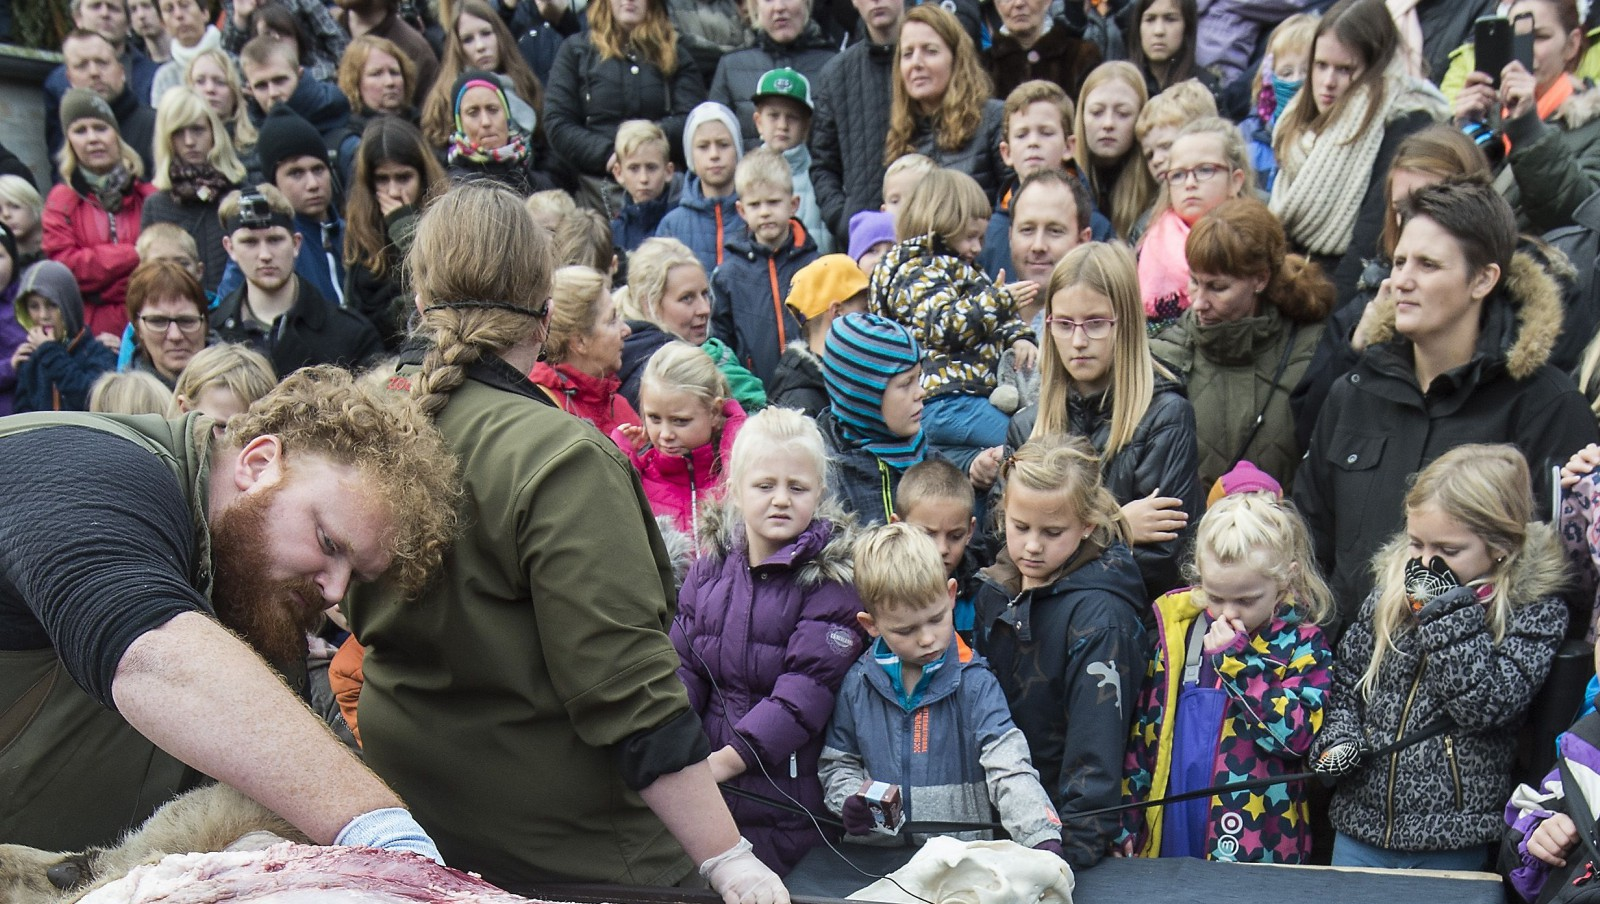 epa04978464 REPEATING TO CORRECT DATELINE  Zoo biology experts Lotte Tang Berg and Rasmus Kolind   dissect a lion in the Danish town of Padborg 15 October 2015 watched by a large crowd, mostly made up of schoolchildren.  As the animal was cut up they were given information about the many different organs.  EPA/Claus Fisker DENMARK OUT